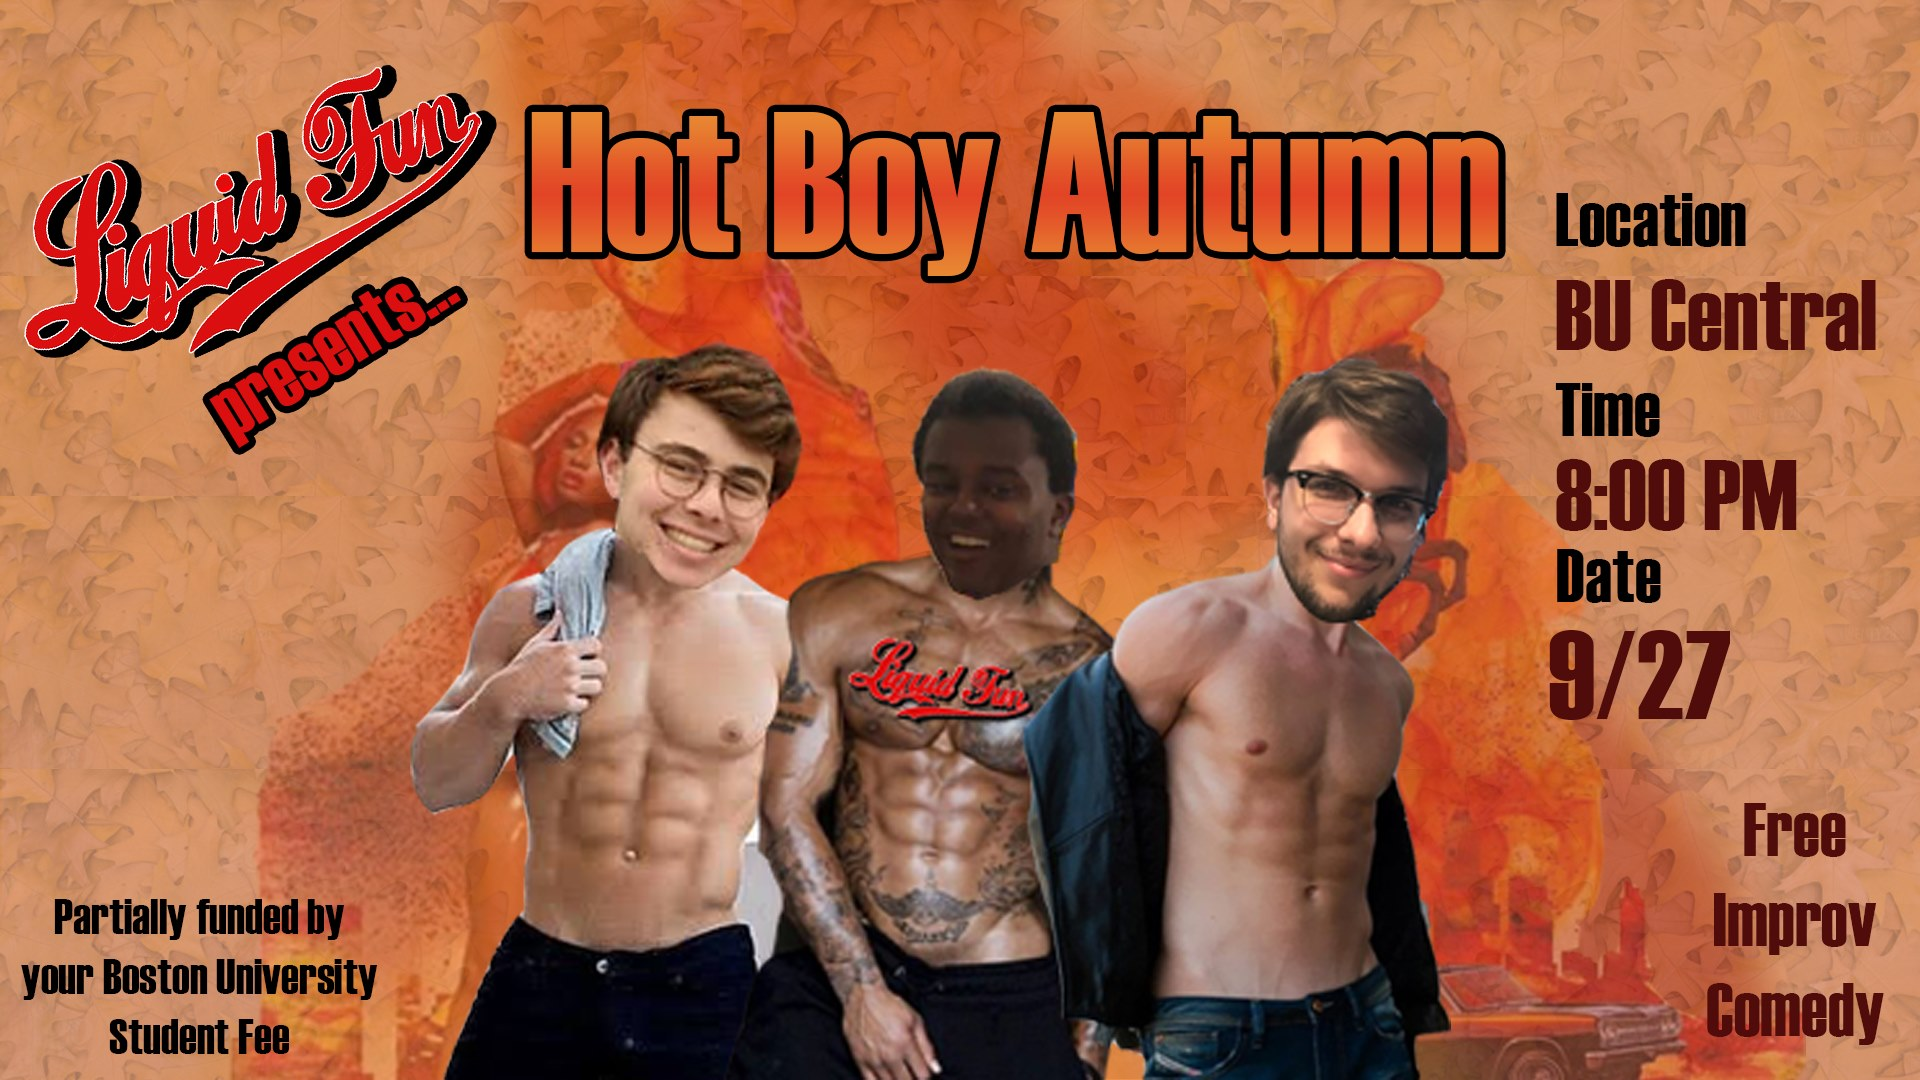 Hot Boy Autumn